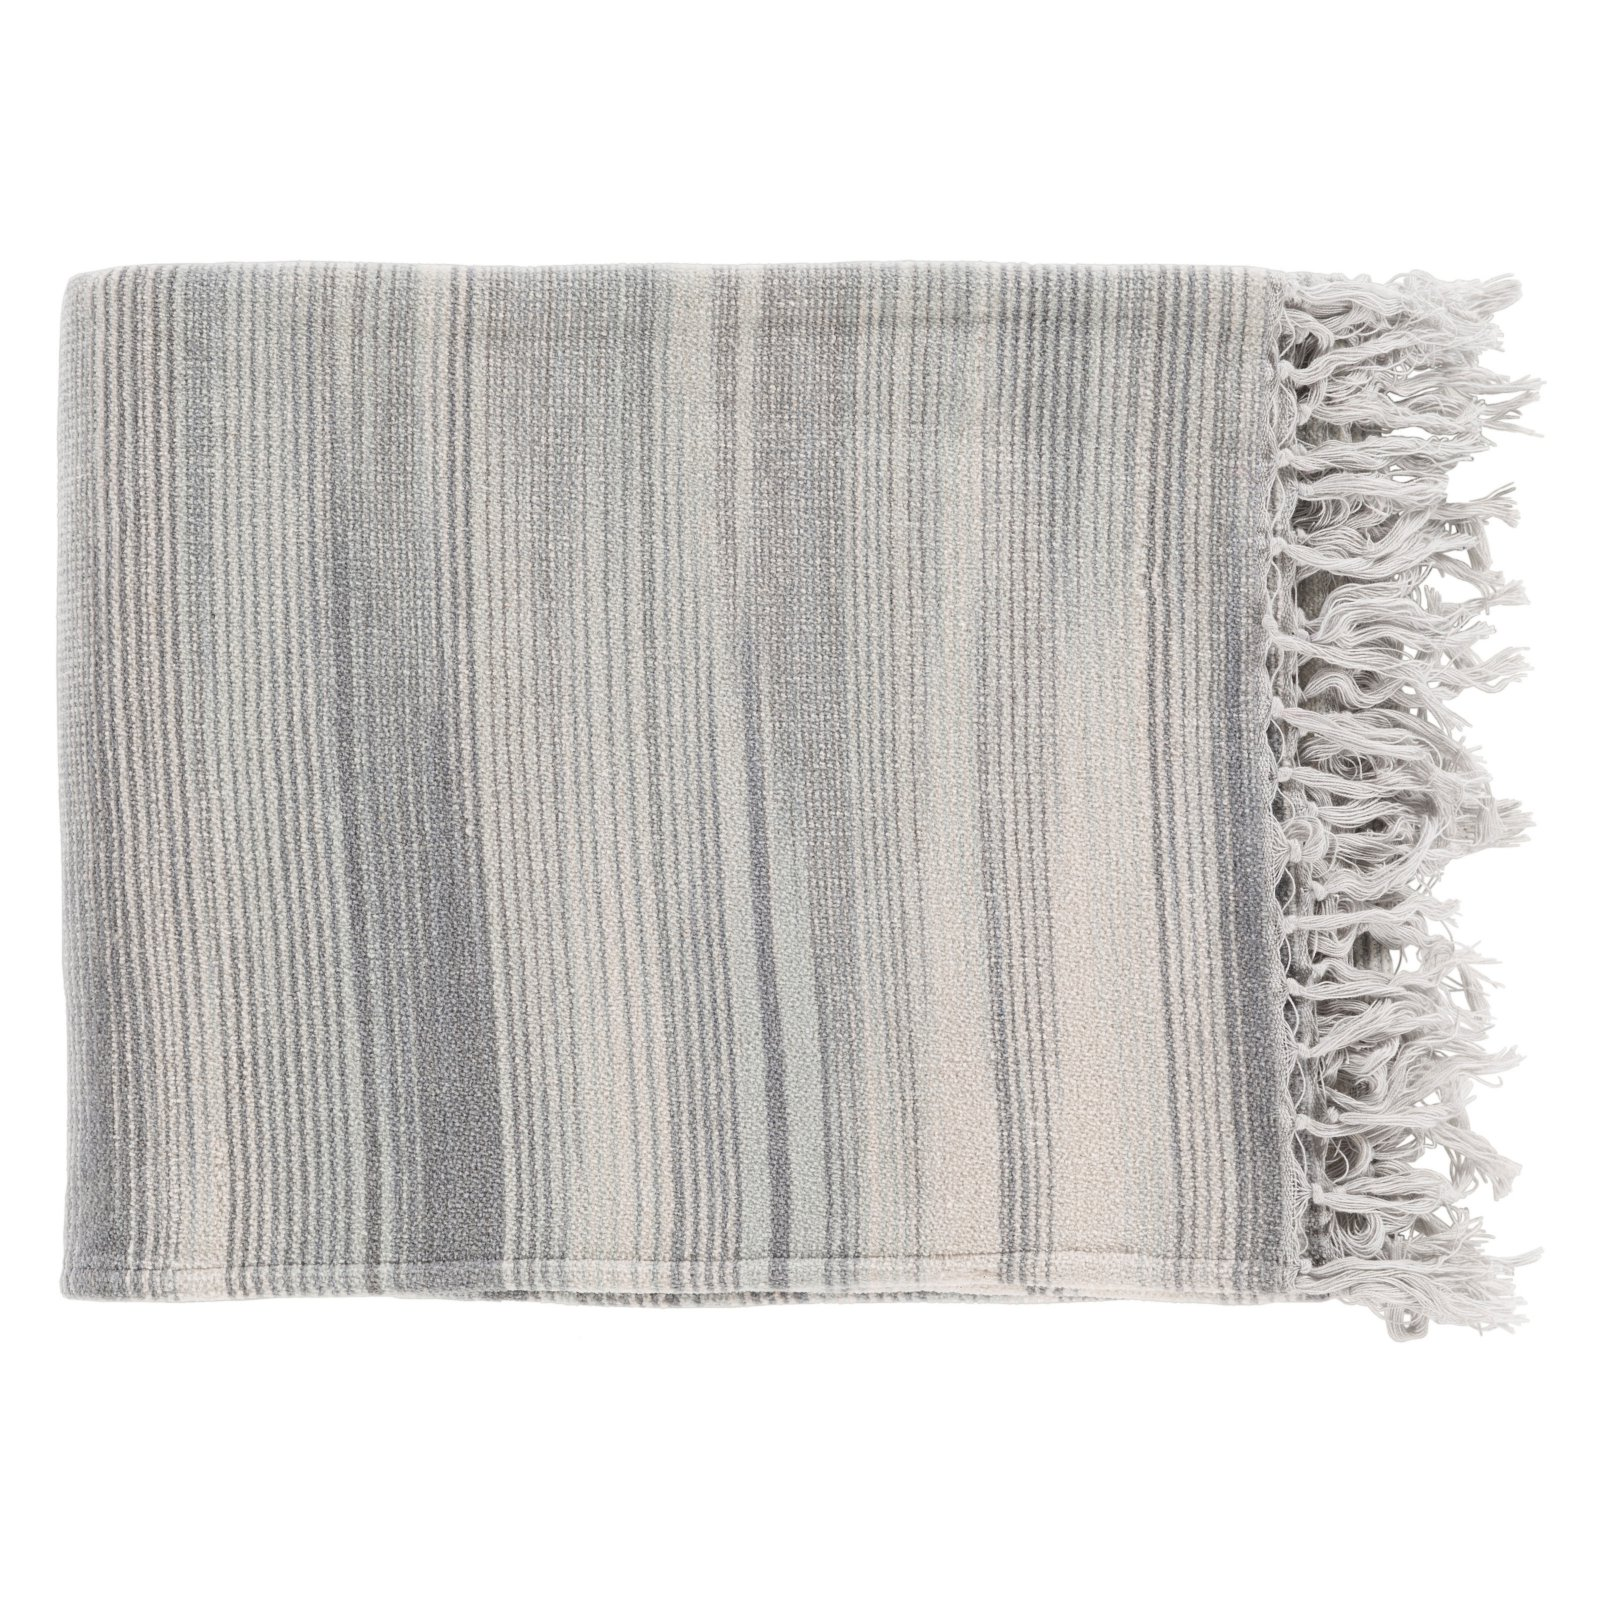 Surya Tanga Cotton Throw Blanket